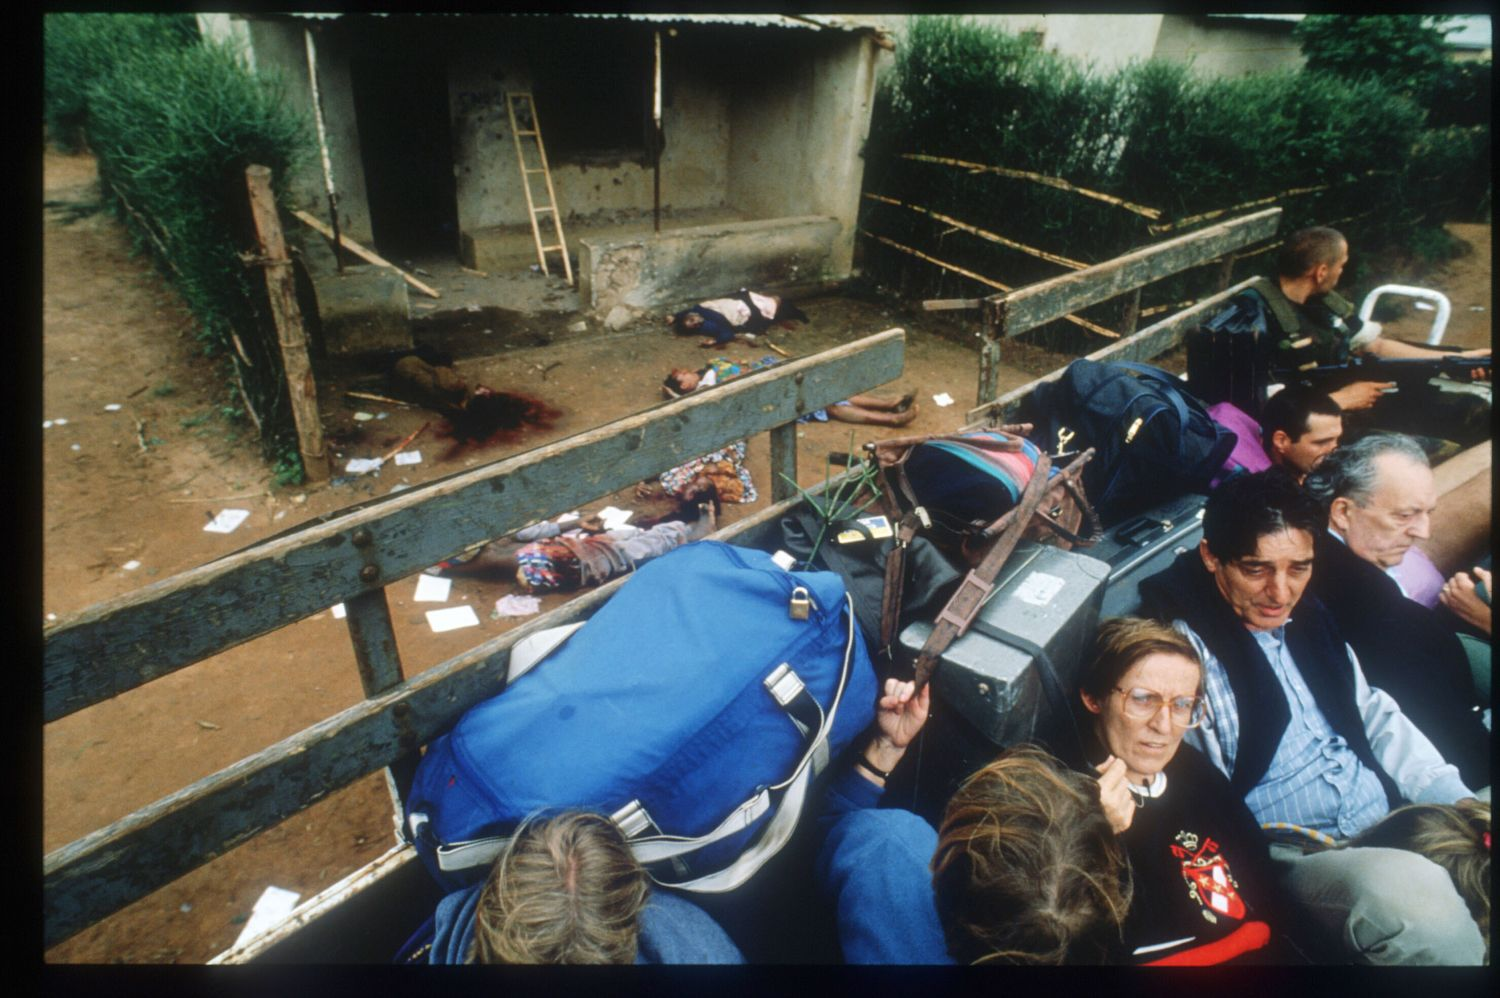 185349 20: A truckload of evacuating Belgian civilians drives past corpses April 11, 1994 in Kigali, Rwanda. The majority of French and Belgian nationals living in Rwanda have decided to leave, after civil war between Hutus and Tutsis has left between 500,000 and one million dead. (Photo by Scott Peterson/Liaison)